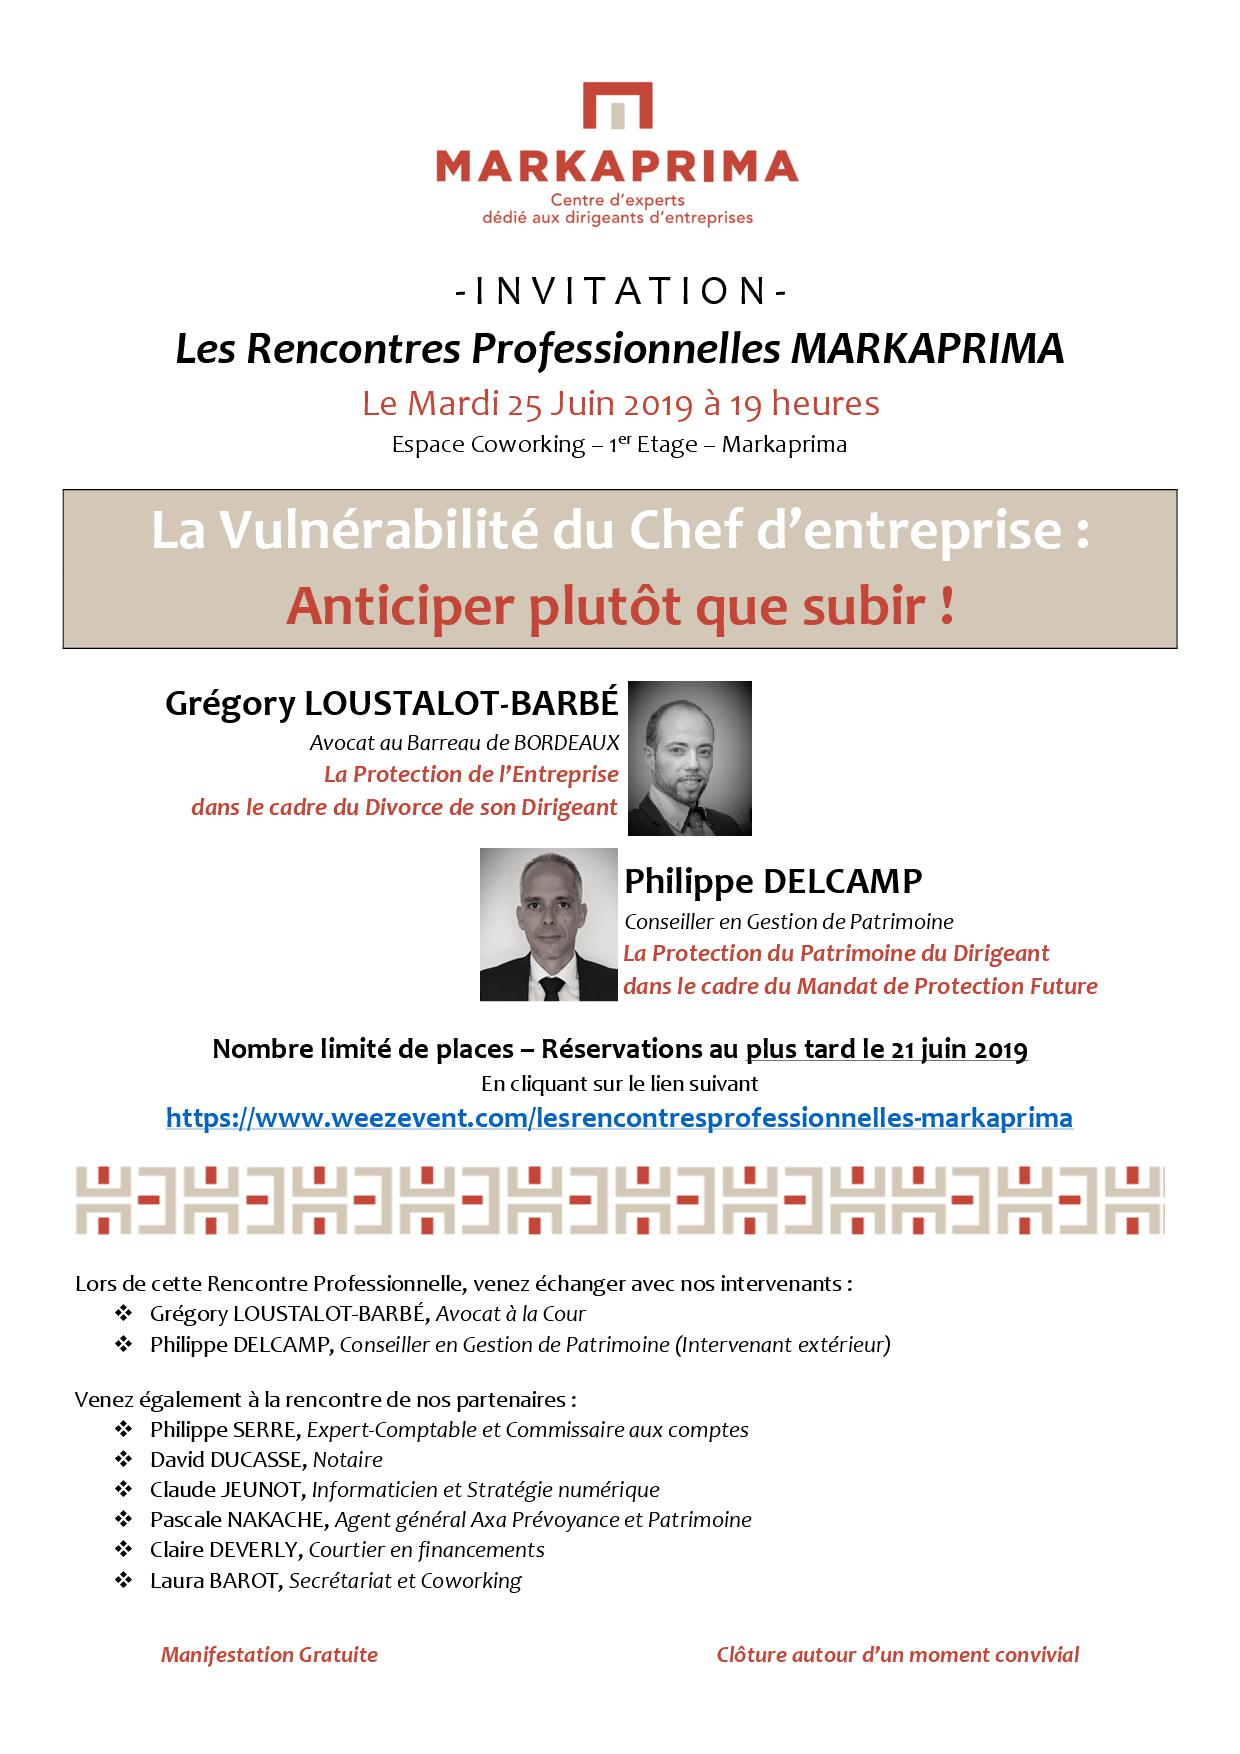 INVITATION RENCONTRE MARKAPRIMA